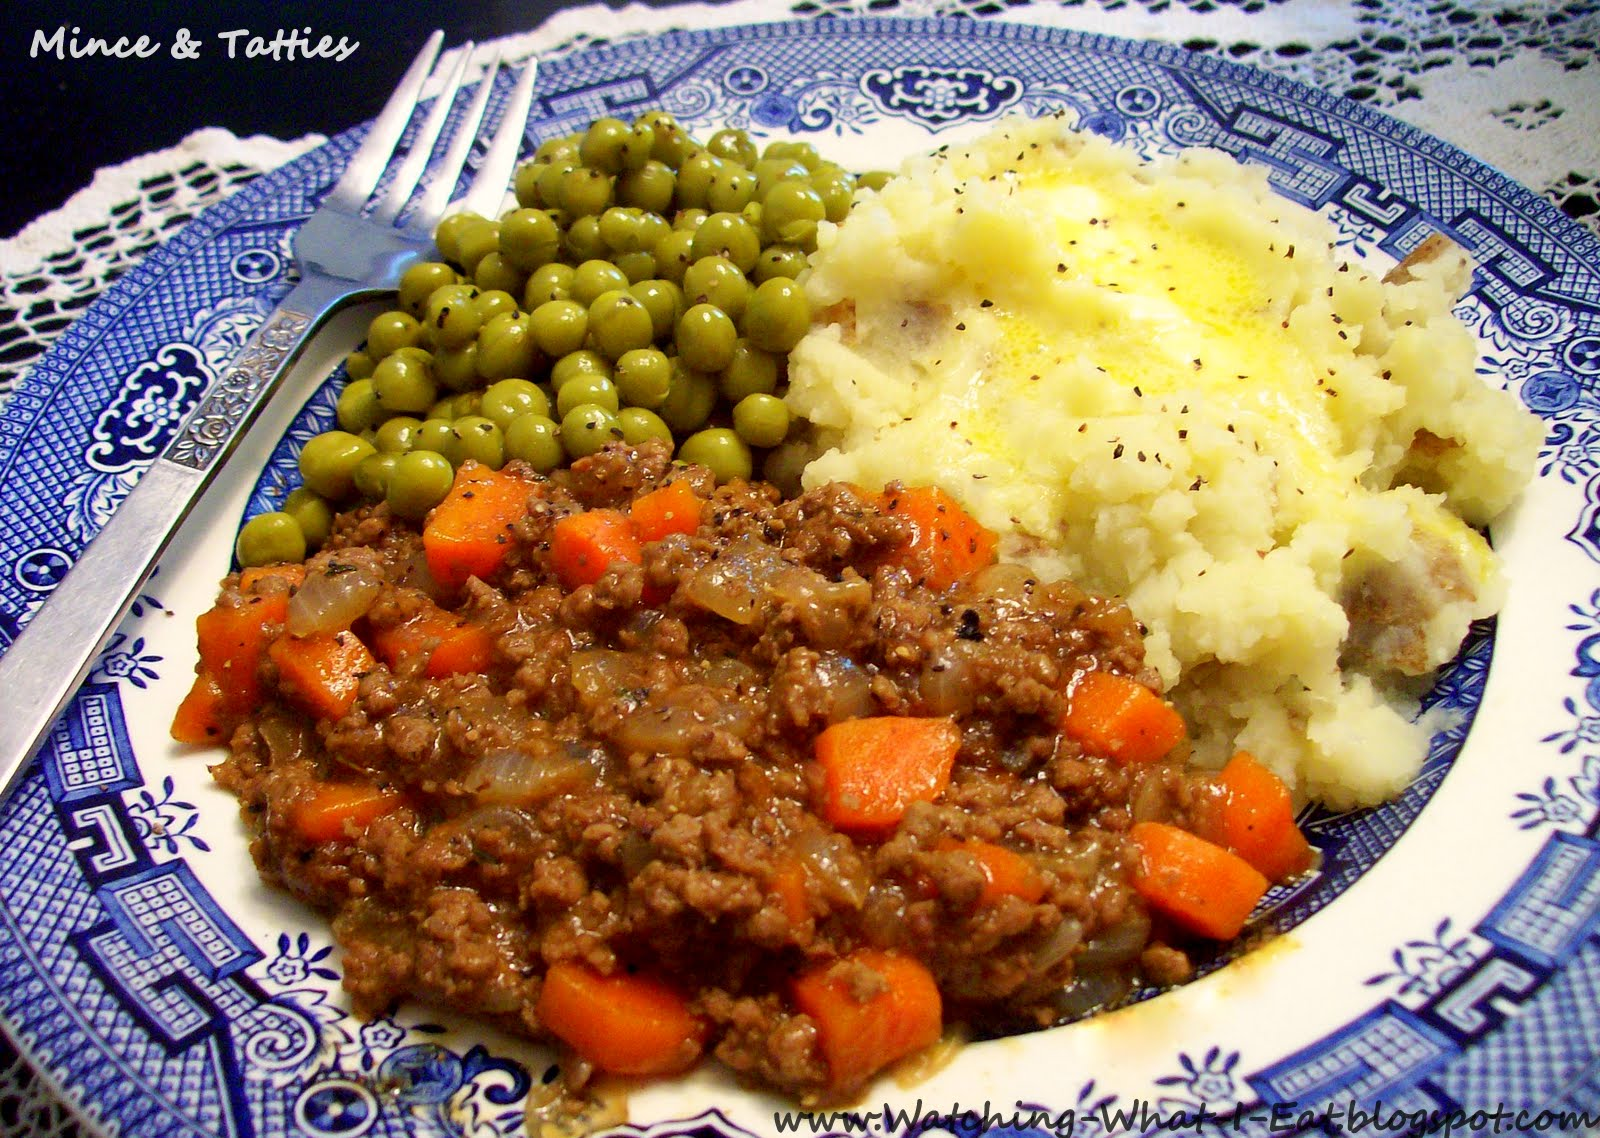 Watching what i eat mince tatties a favorite scottish meal mince tatties a classic scottish dish that is super easy to make budget friendly a dinner that is perfect for the whole family to enjoy forumfinder